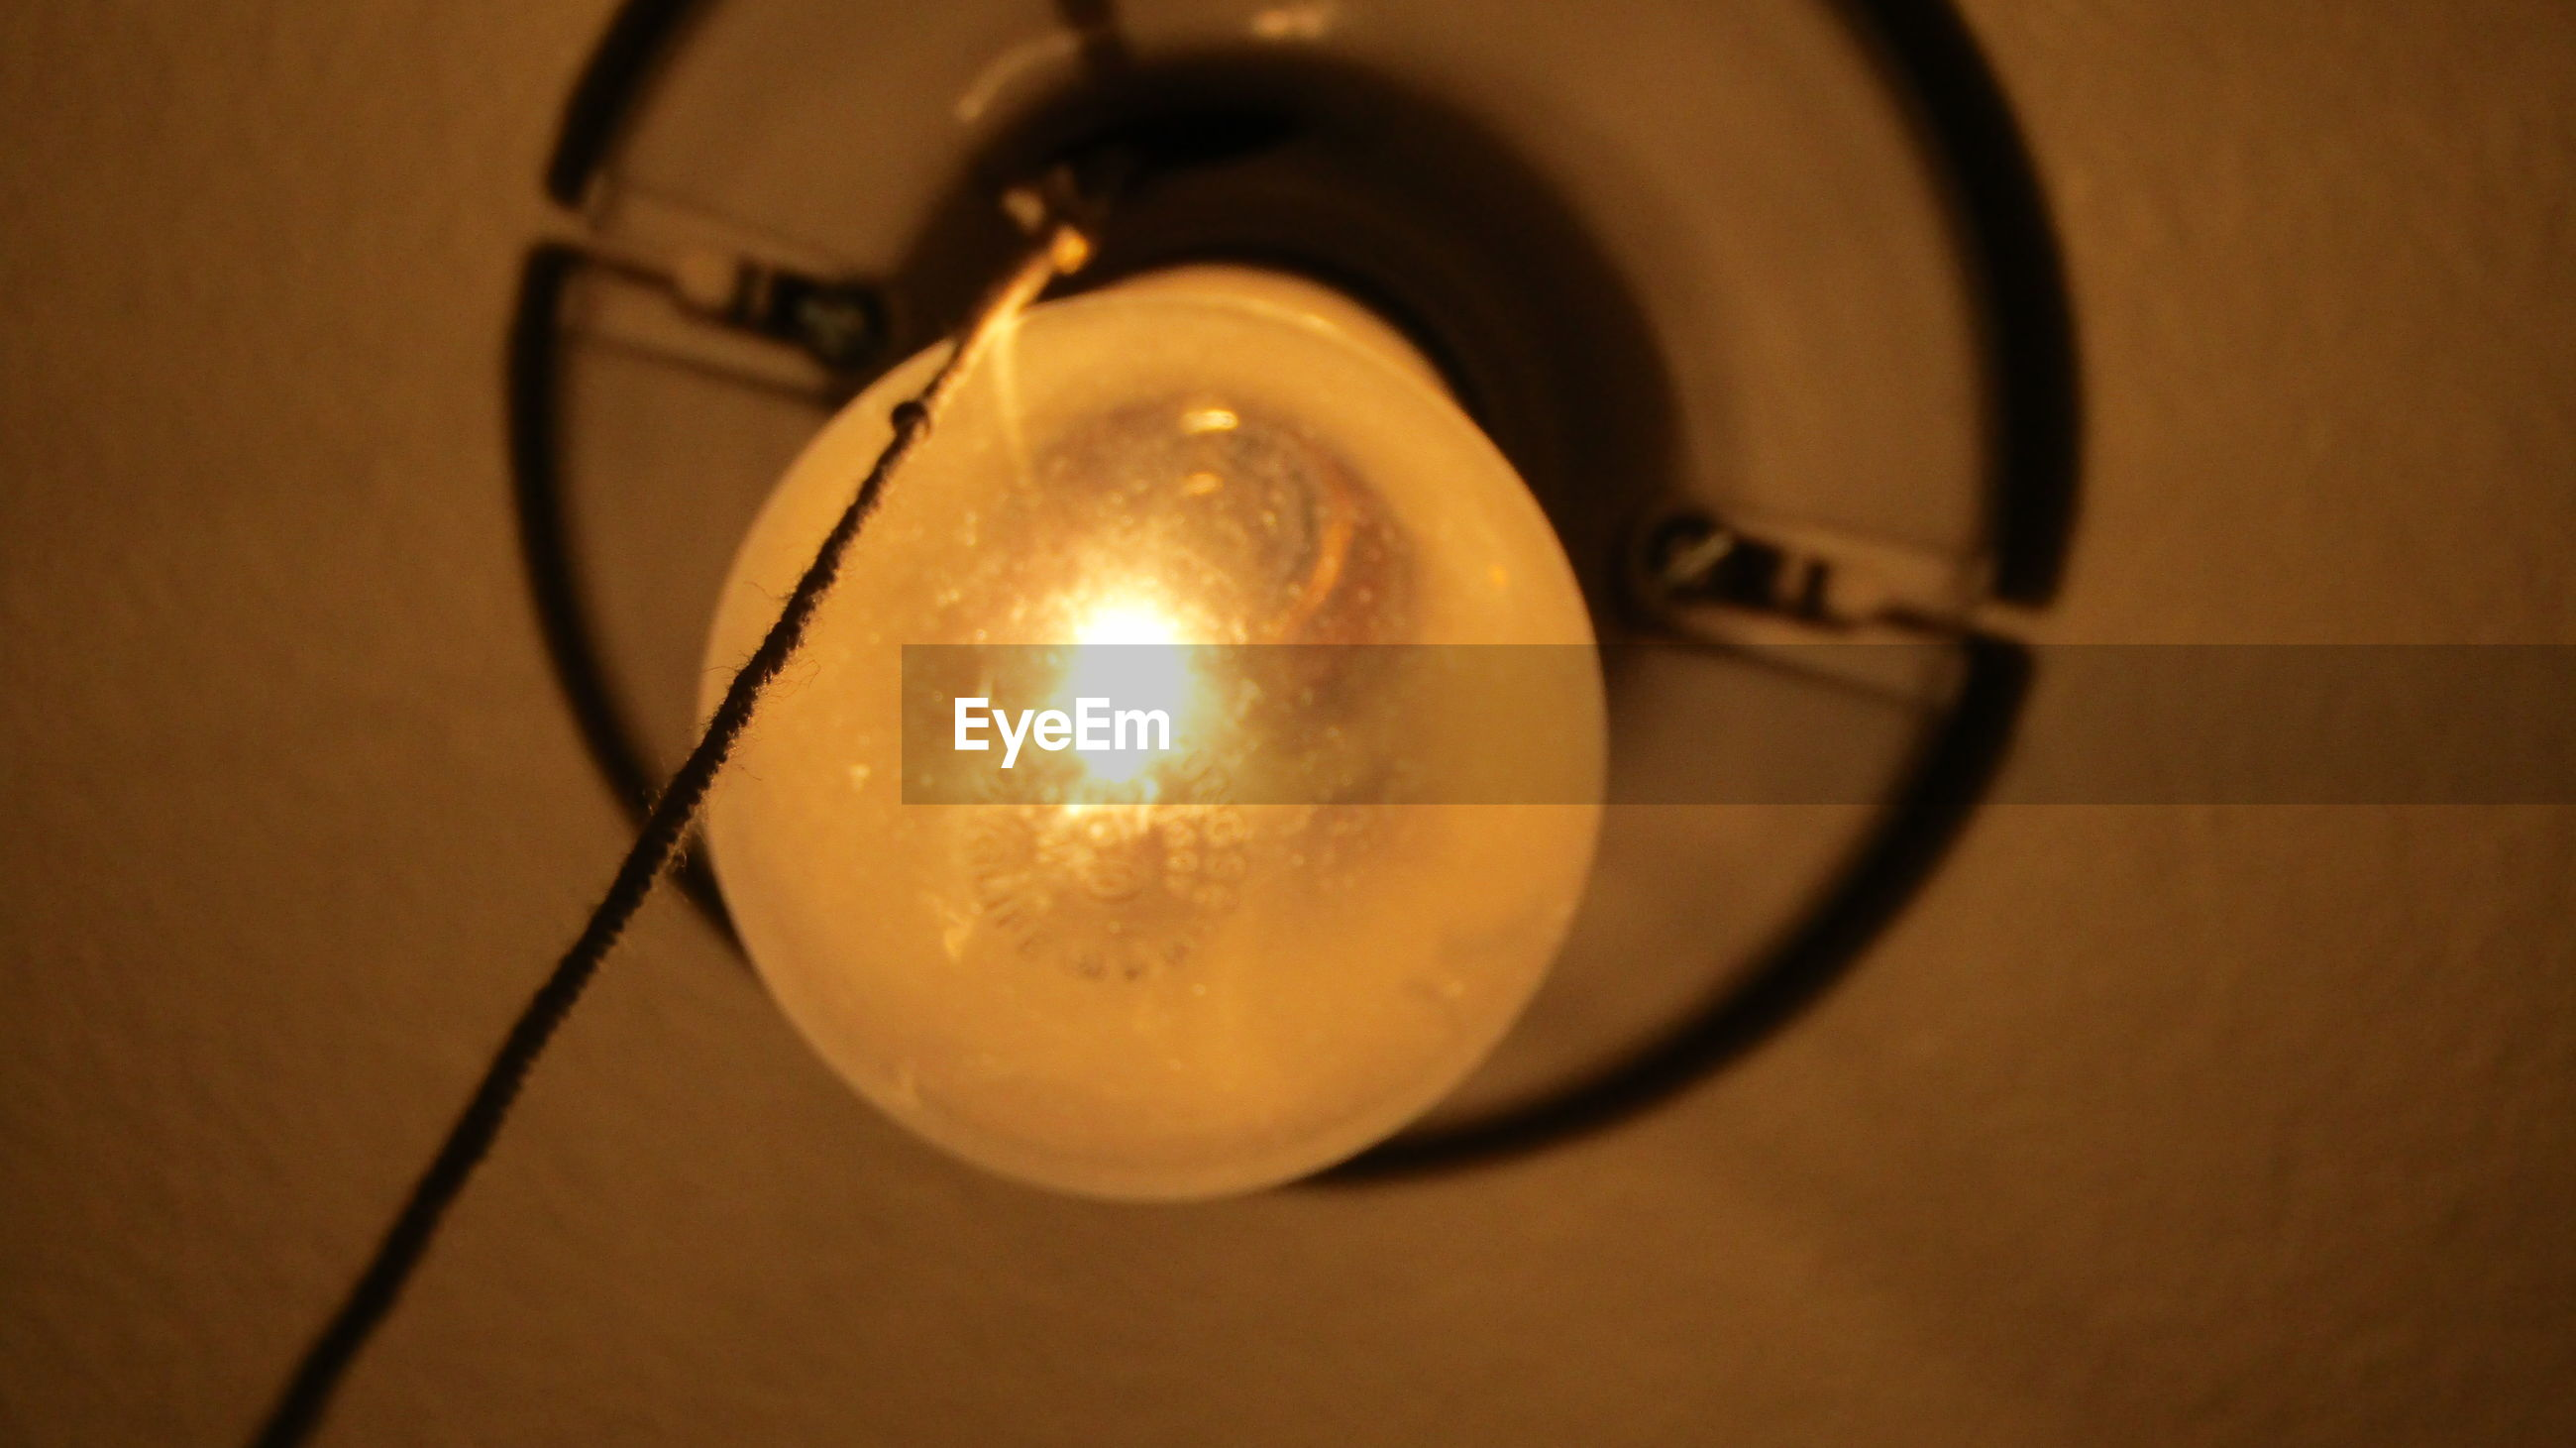 Low angle view of illuminated light bulb on ceiling